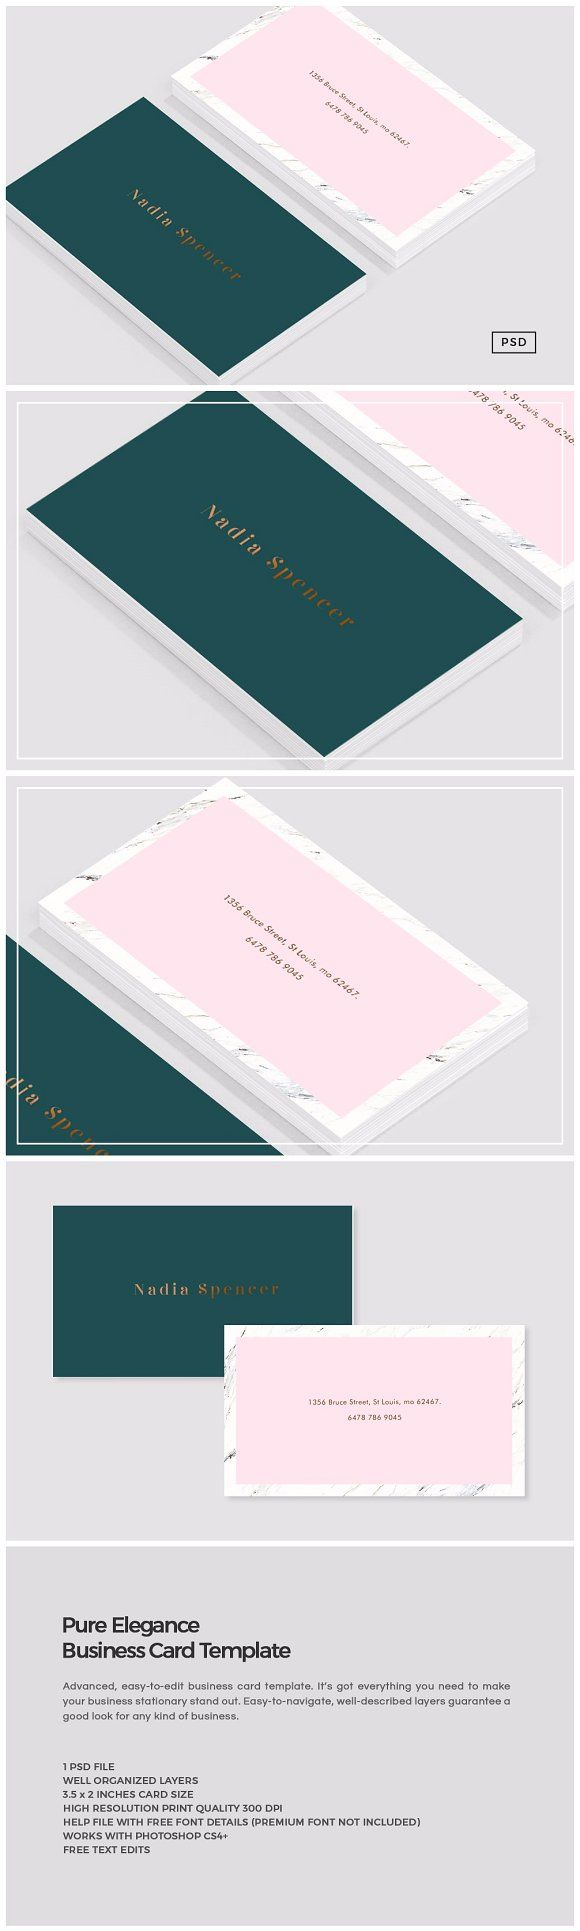 Pure Elegance Business Card Template | Identidad visual